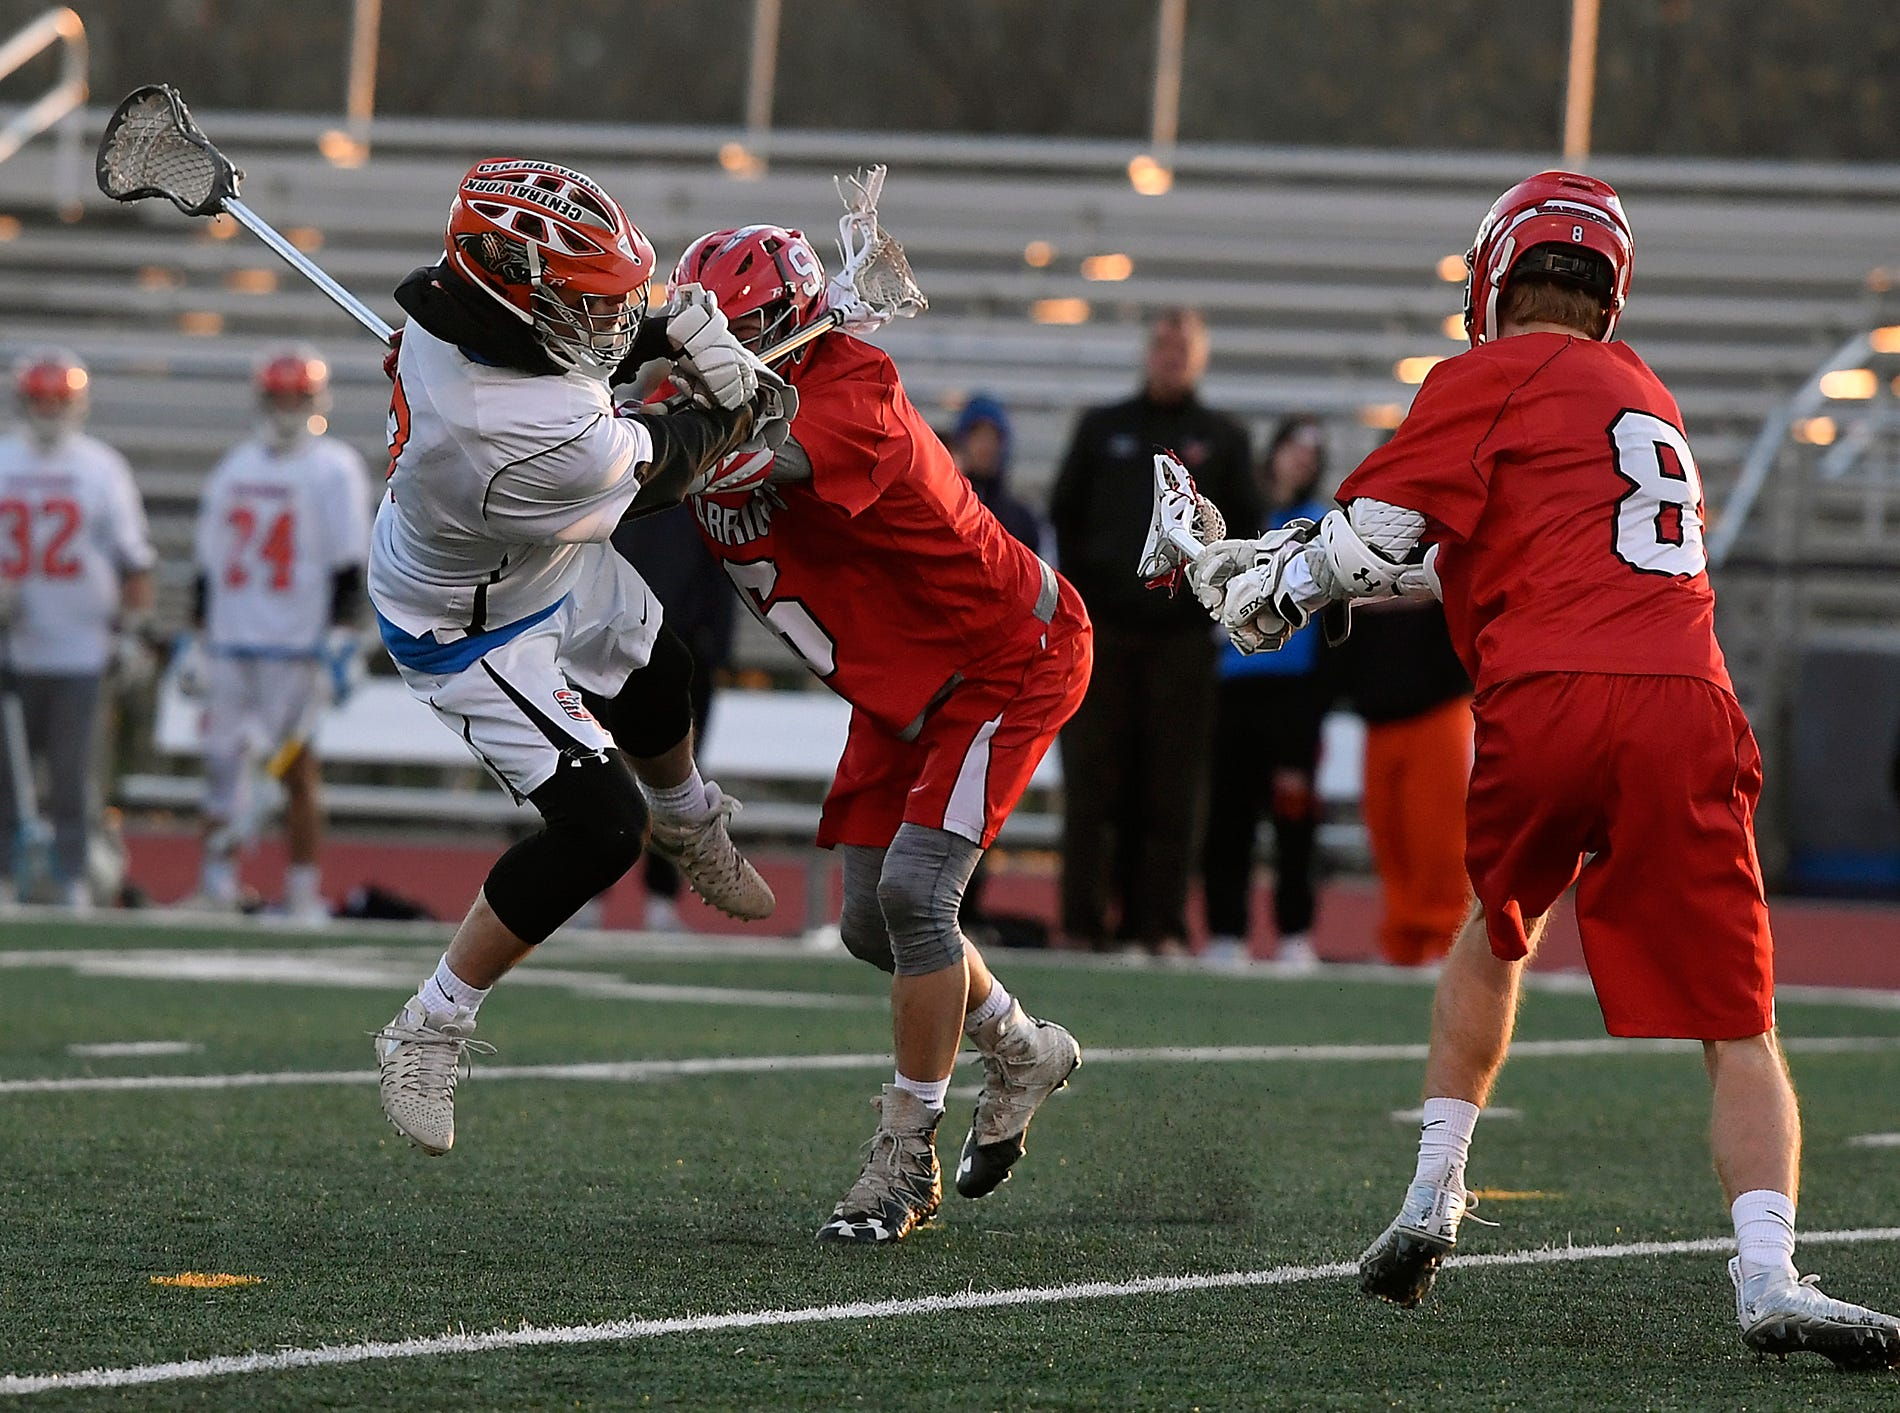 Matt Hawskworth of Central York is knocked off his feet by Ben Wilson of Susquehannock as he takes a shot on goal, Monday, April 15, 2019.John A. Pavoncello photo